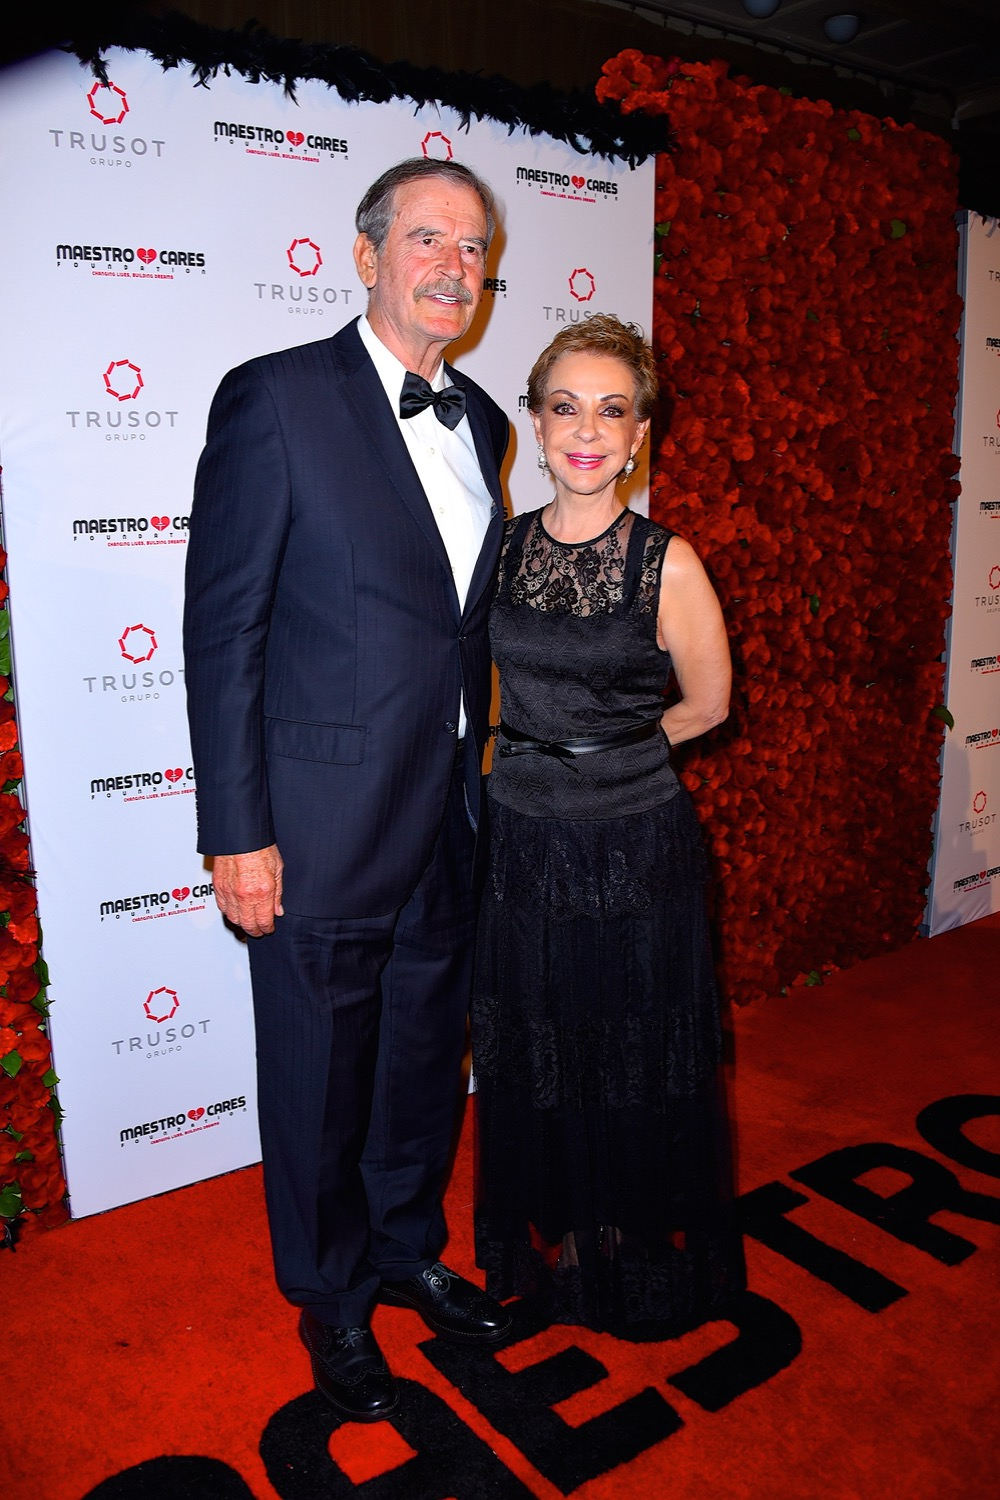 6th Annual Maestro Cares Gala in NYC on March 14, 2019